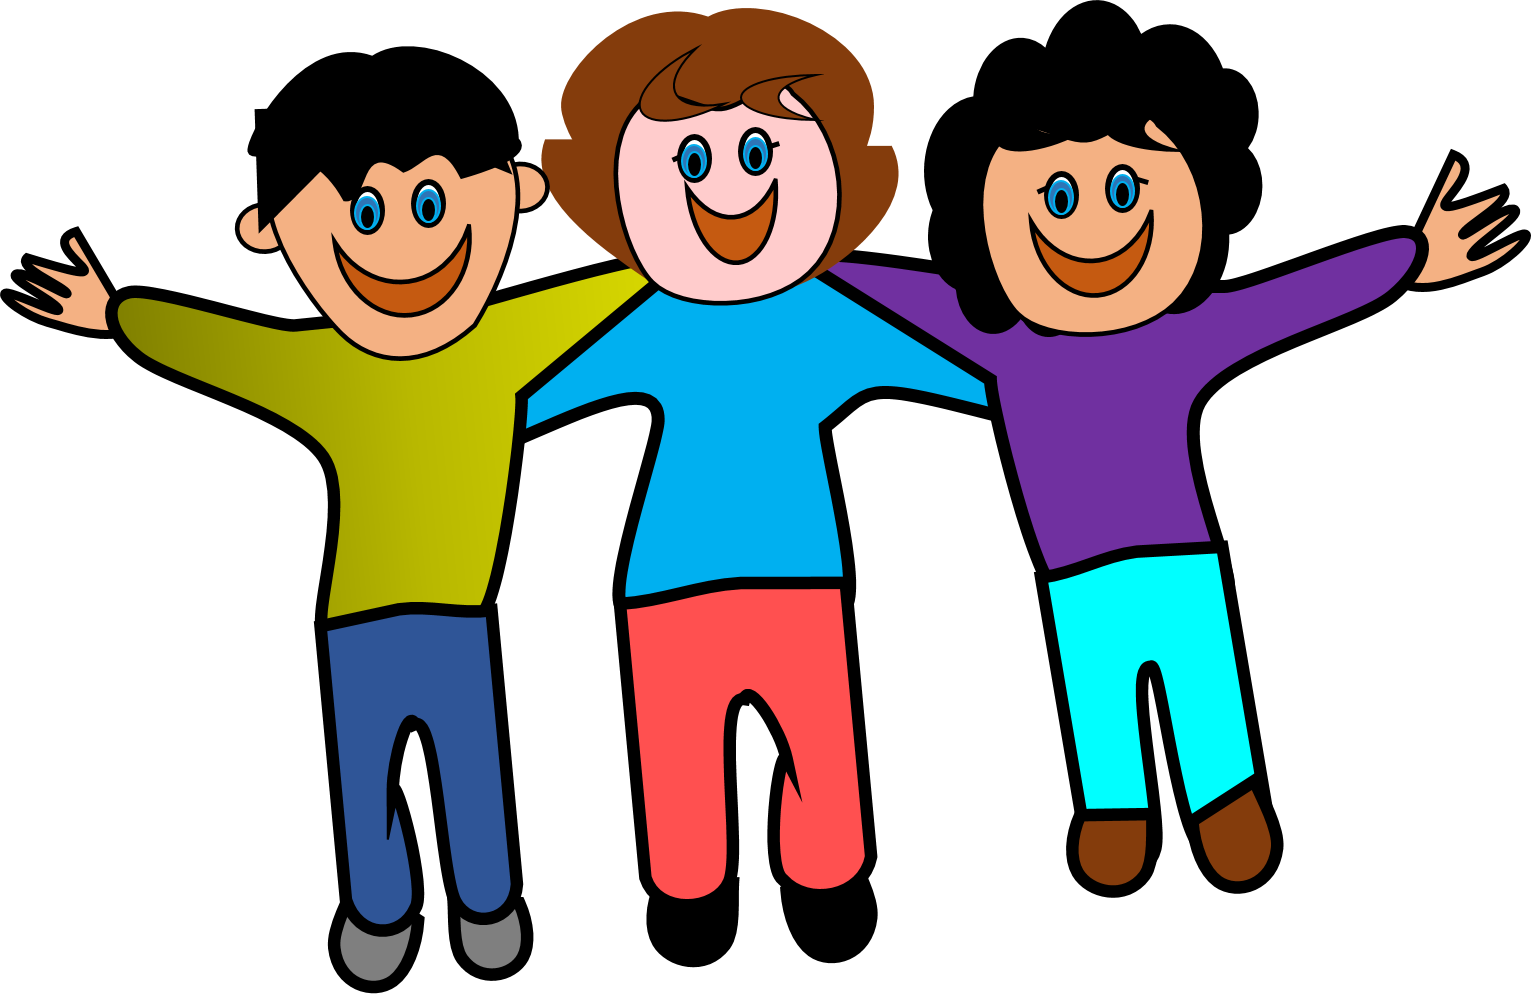 Friends playing clipart at. Clip download jpg royalty free download